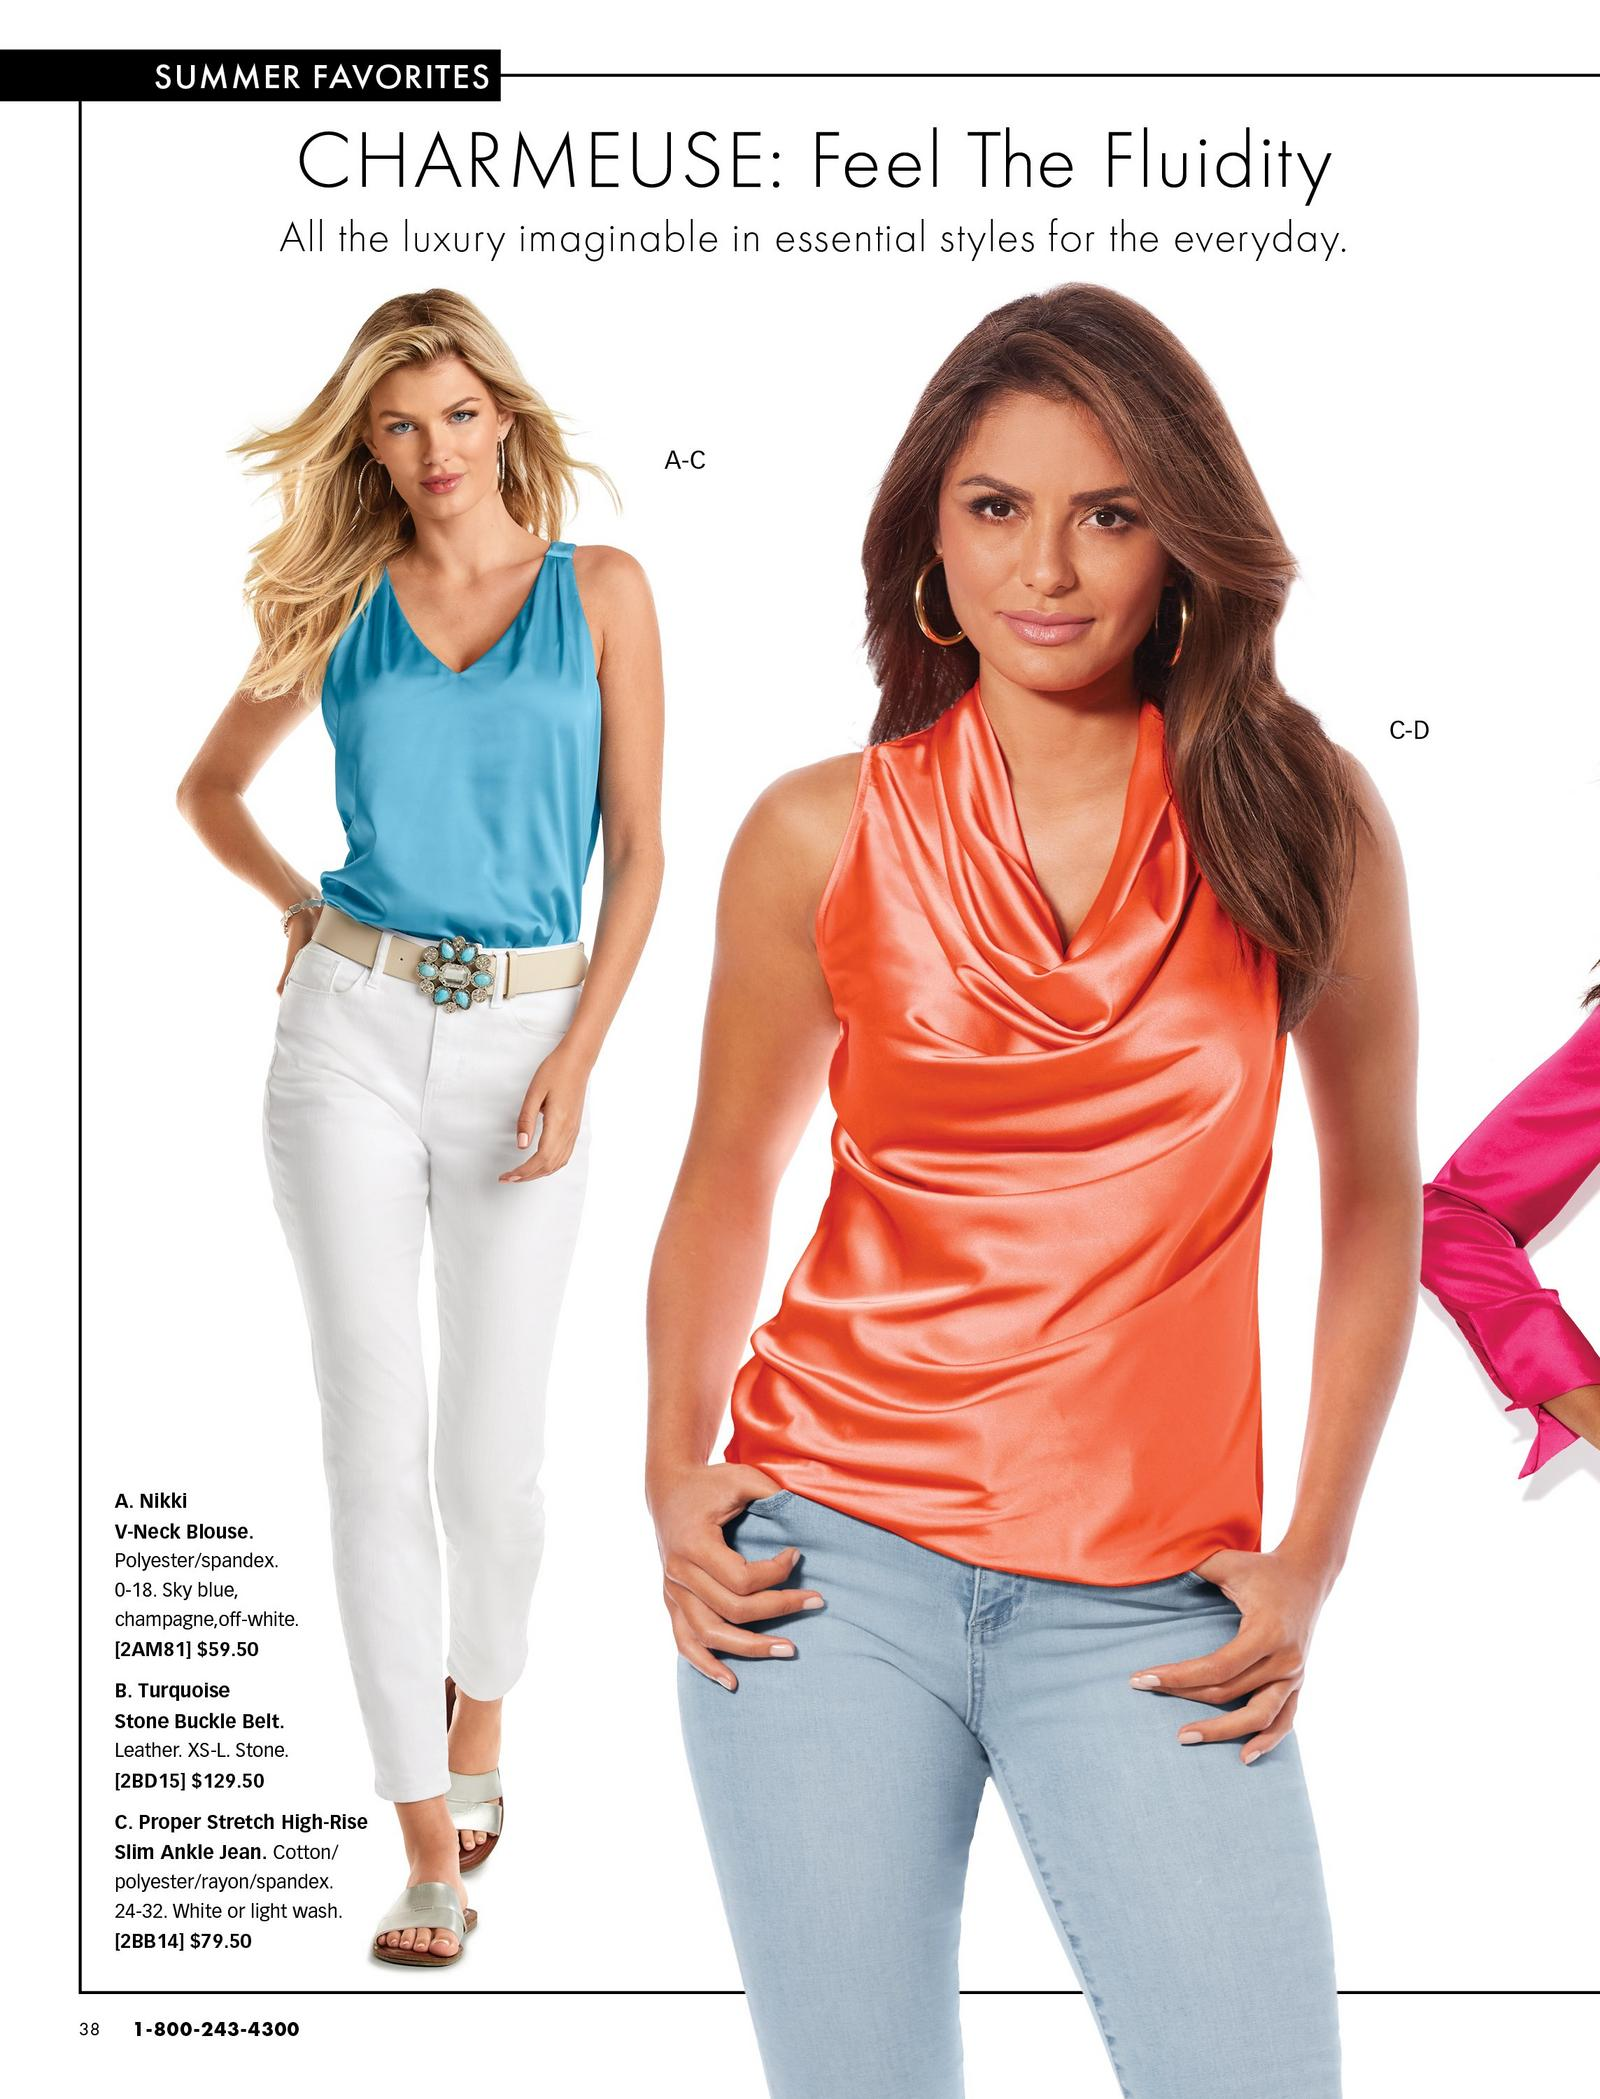 left model wearing a light blue v-neck sleeveless top, turquoise jeweled white belt, white jeans, and silver slide sandals. right model wearing a coral cowl neck sleeveless top and jeans.